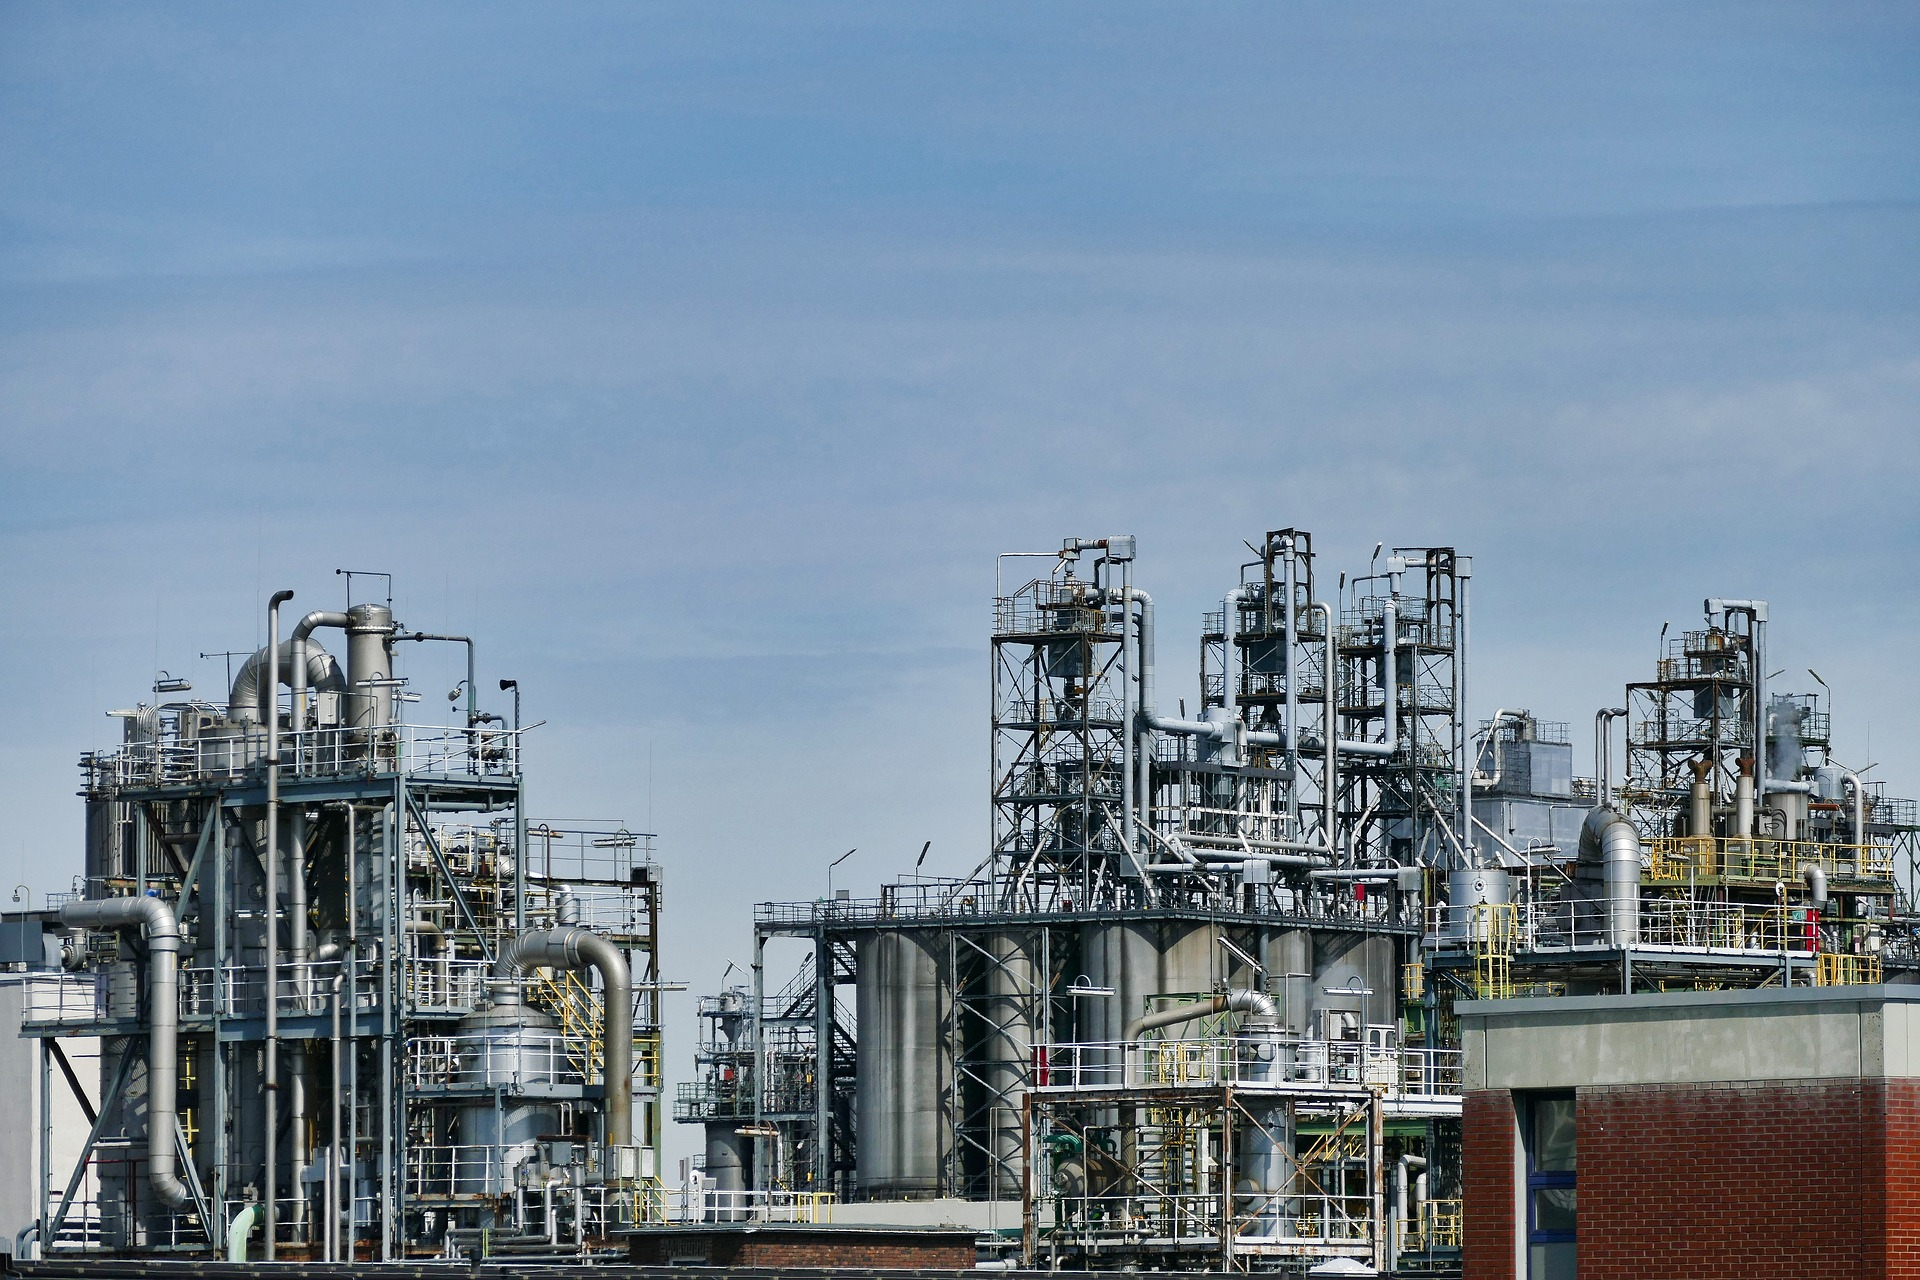 Three Major Stages of Oil and Gas Industry Operations